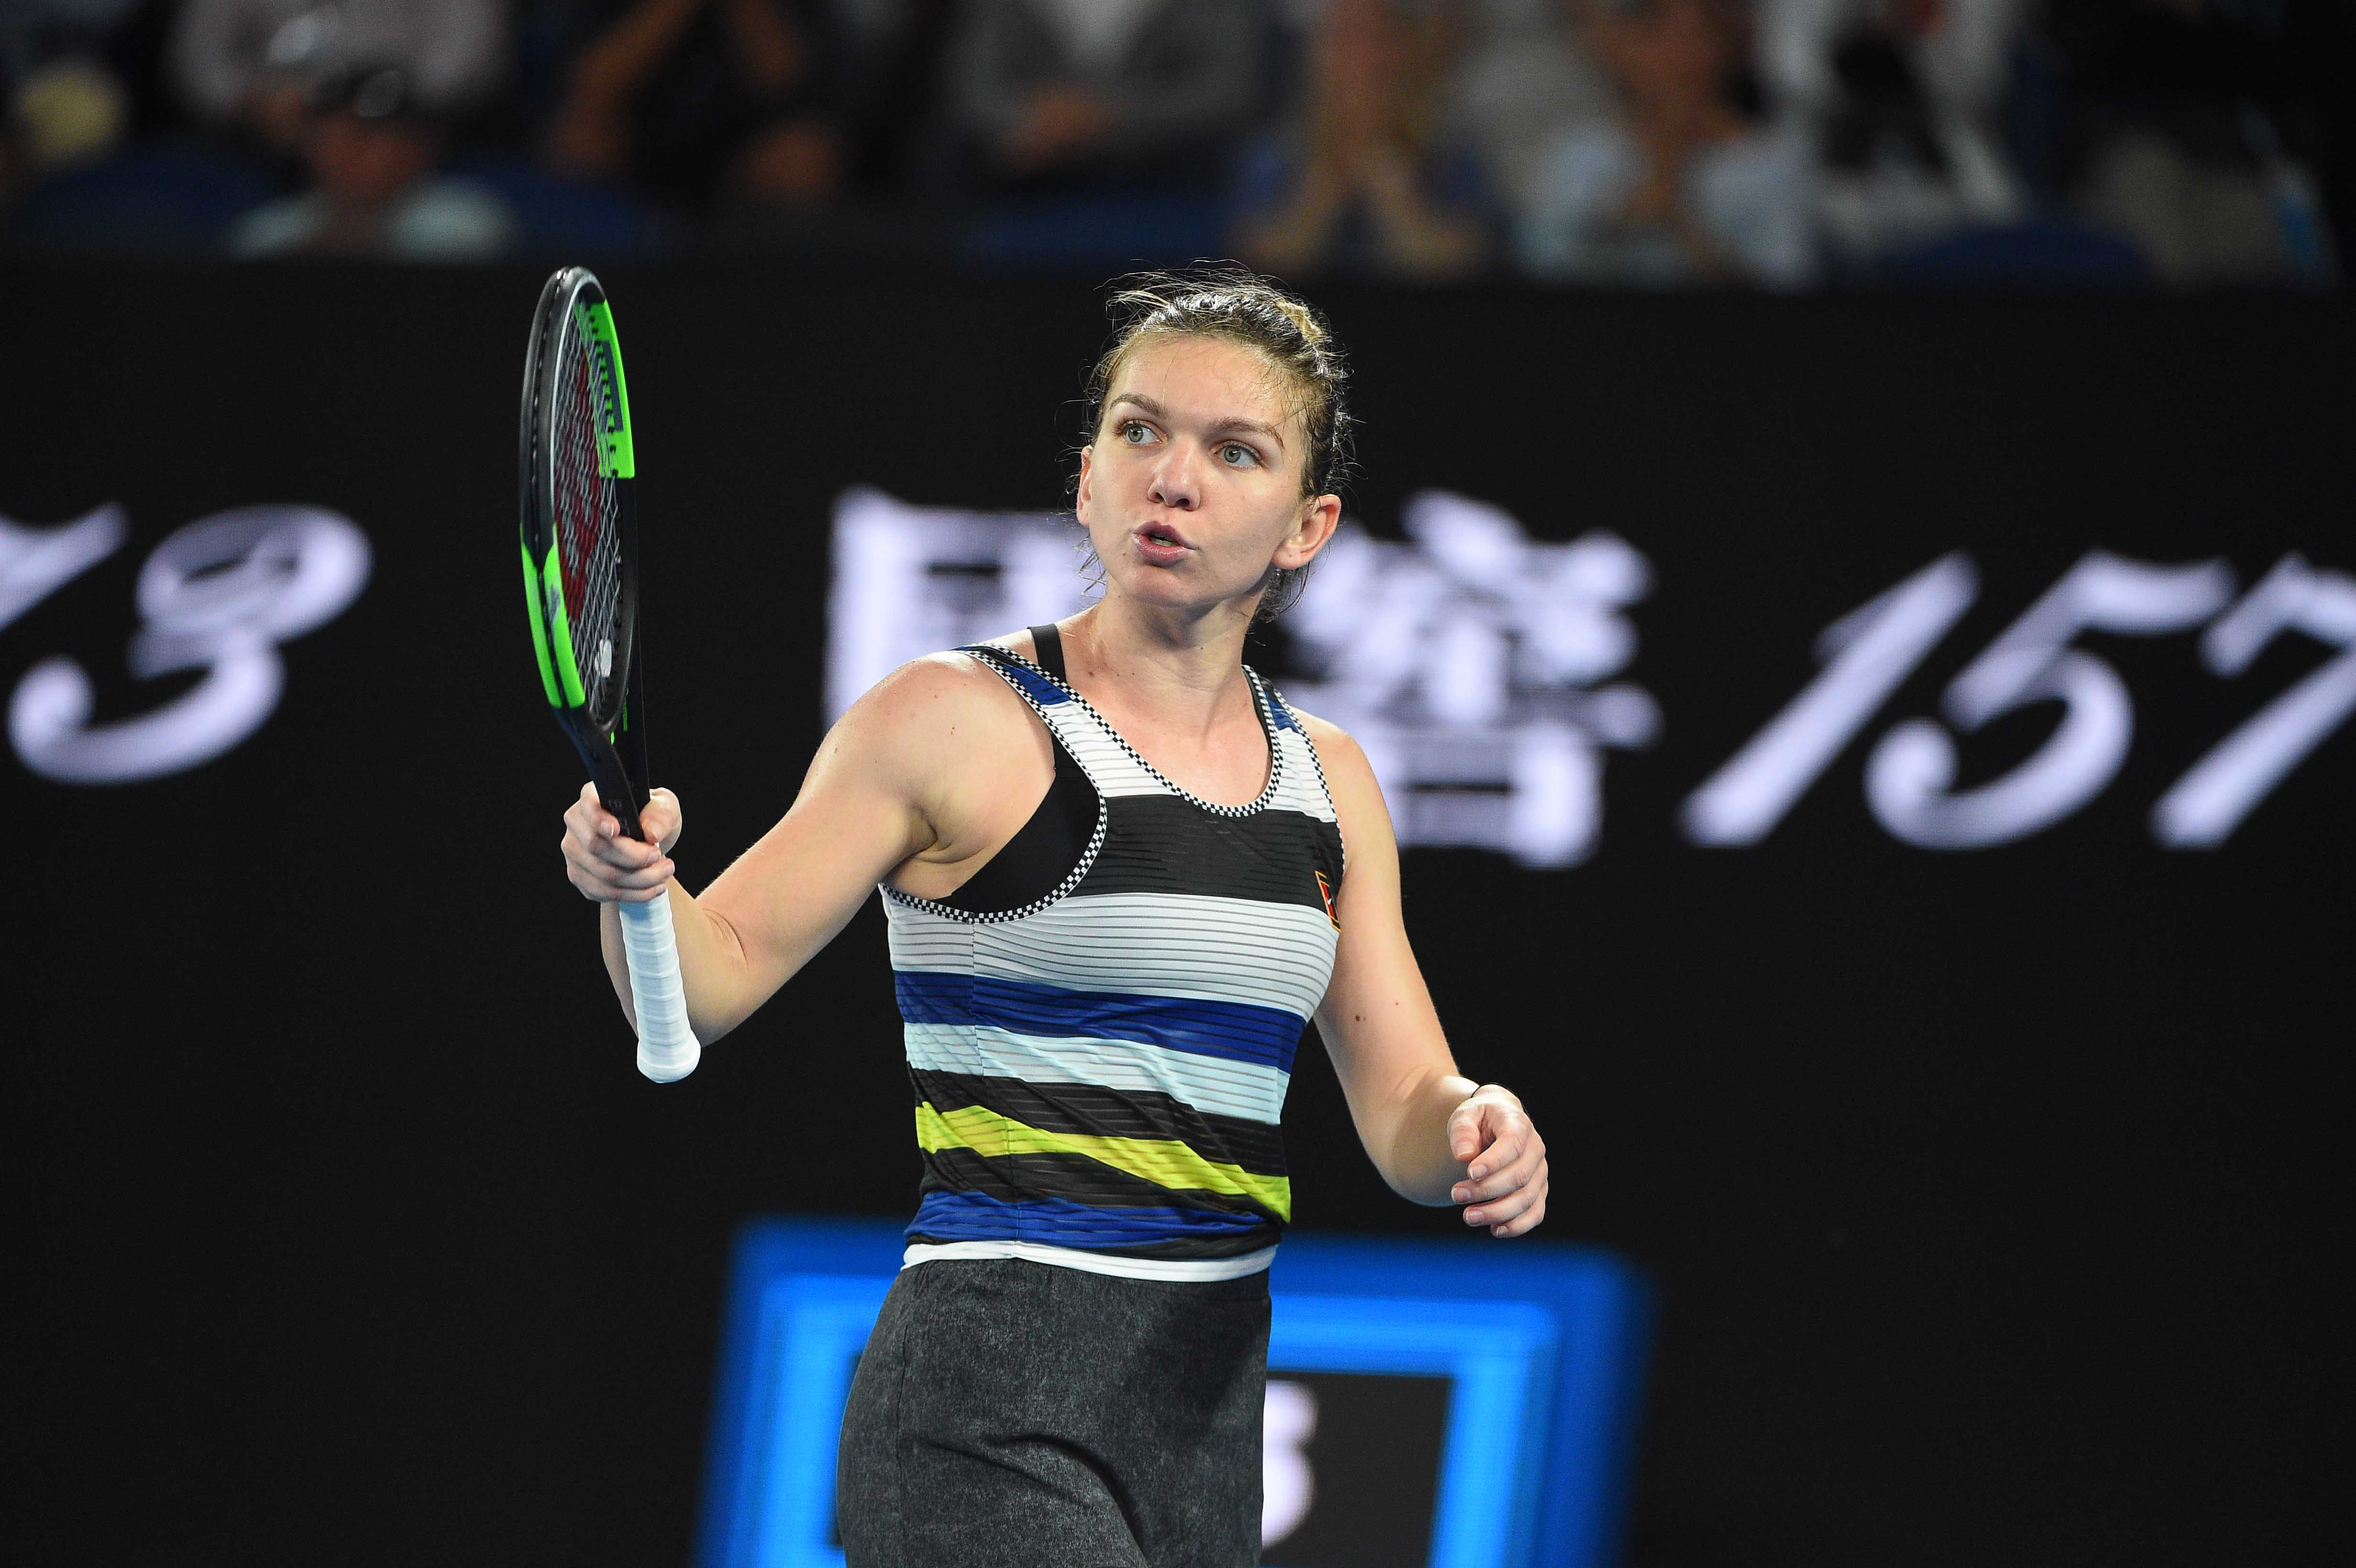 Frustration for Simona Halep at the Australian Open 2019